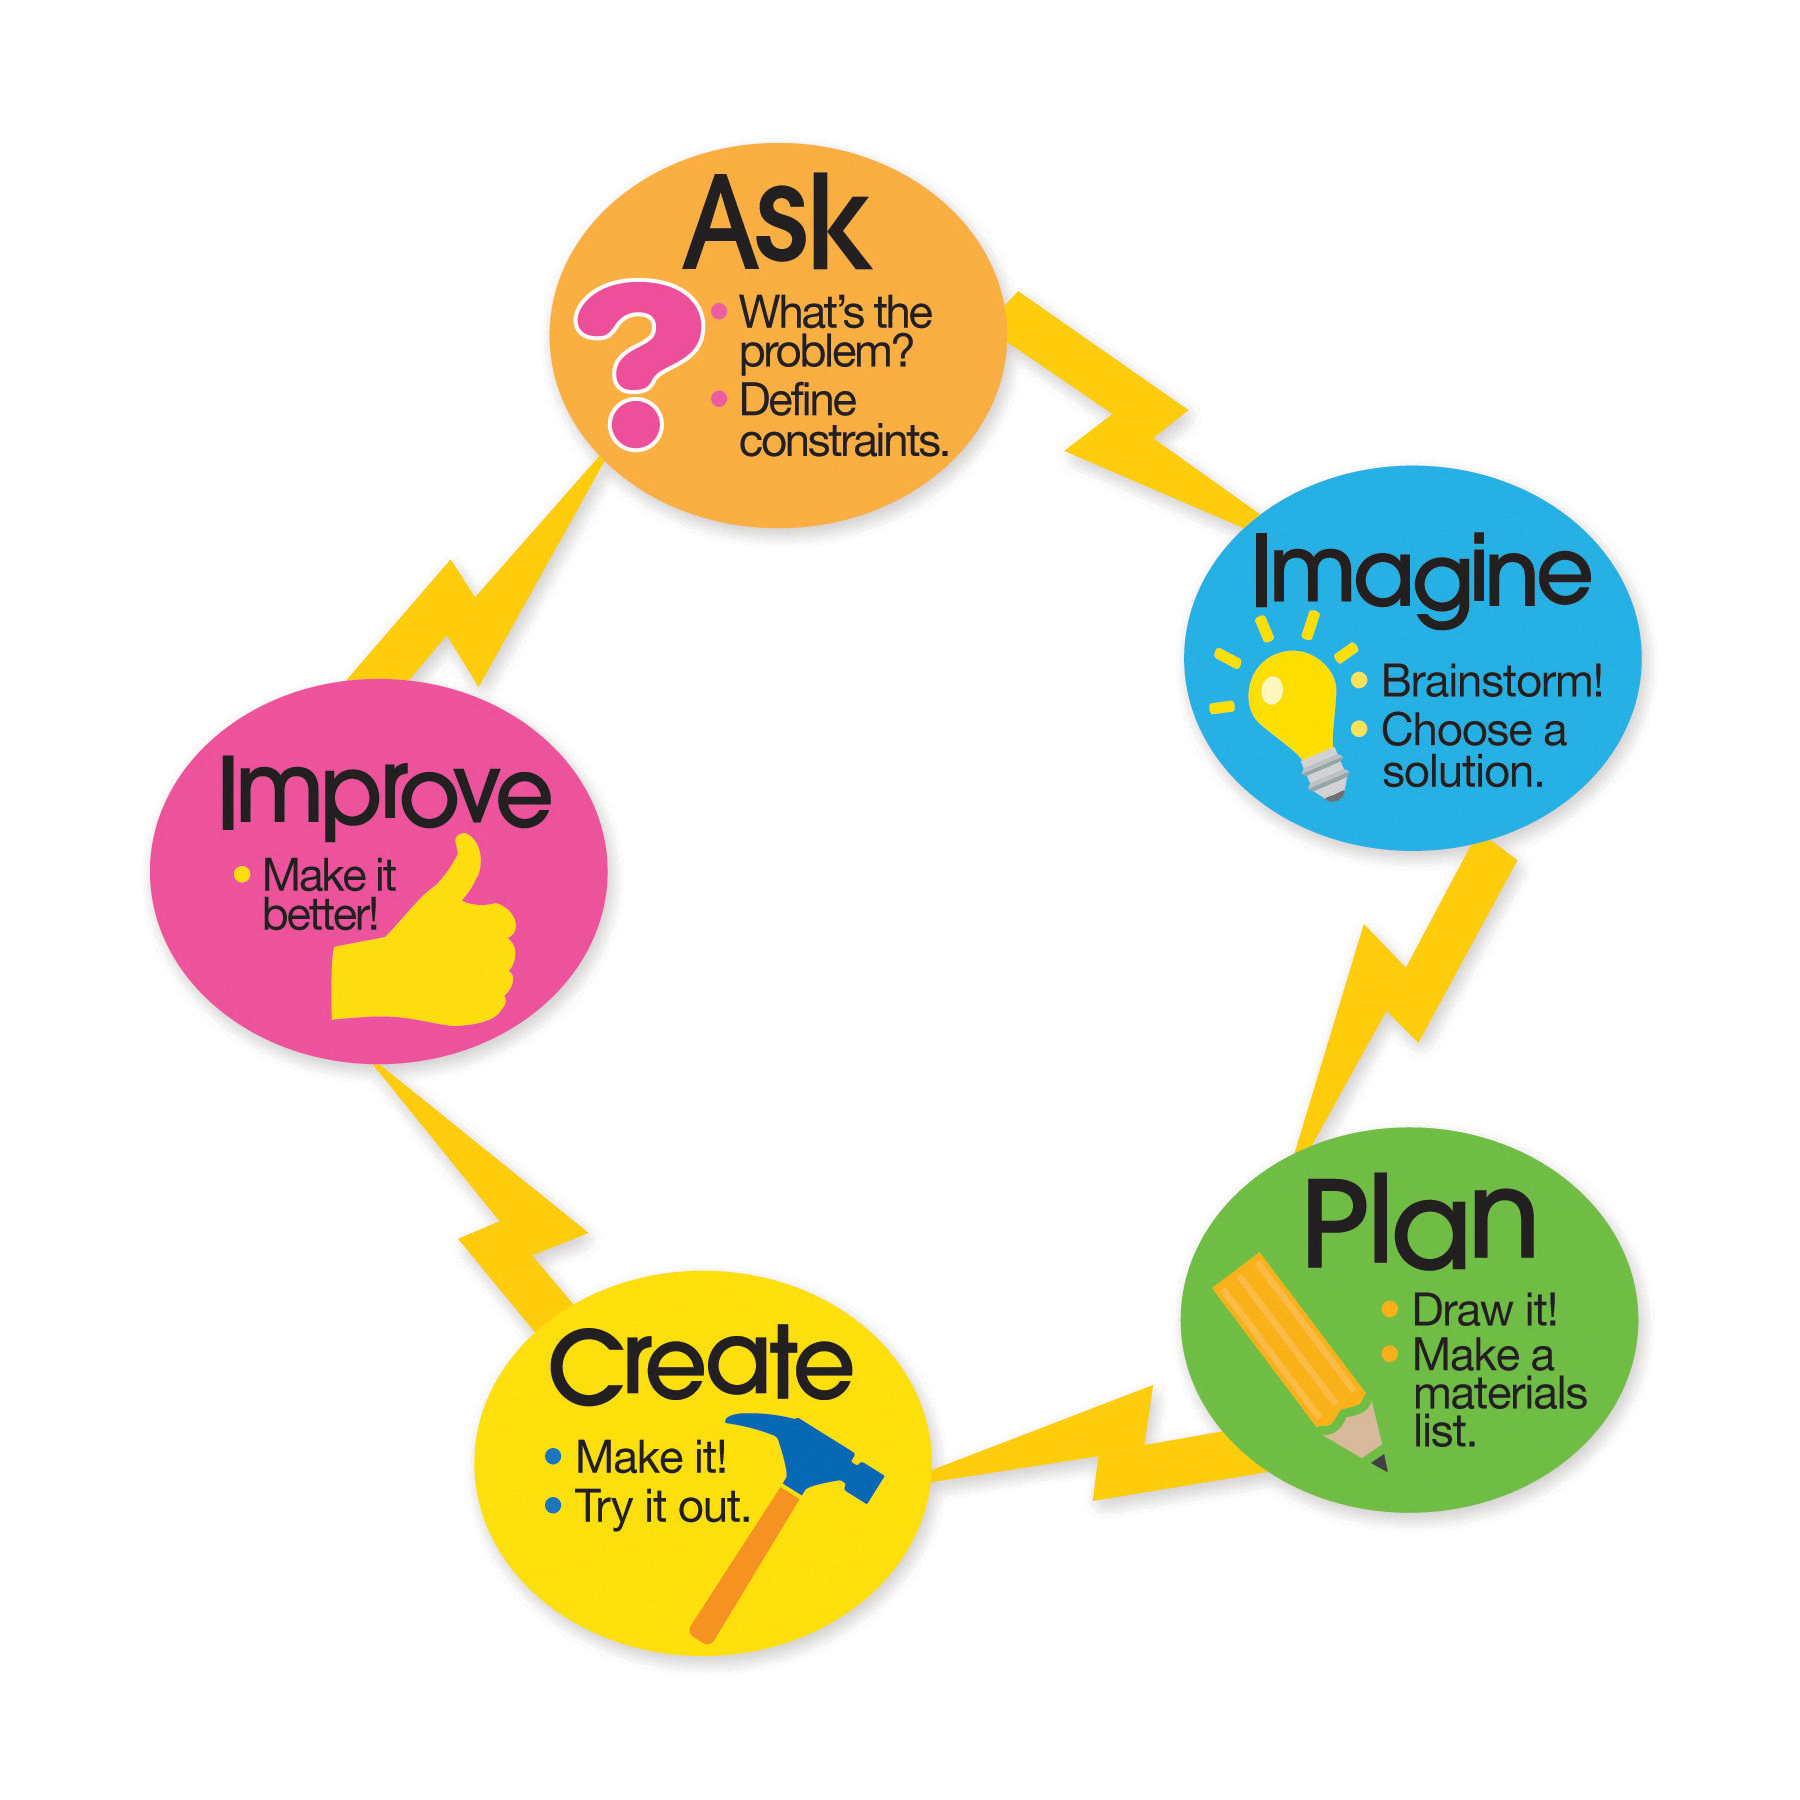 engineering design process Built around the engineering design process, eie teaches kids how to solve problems systematically creating skills, optimism.